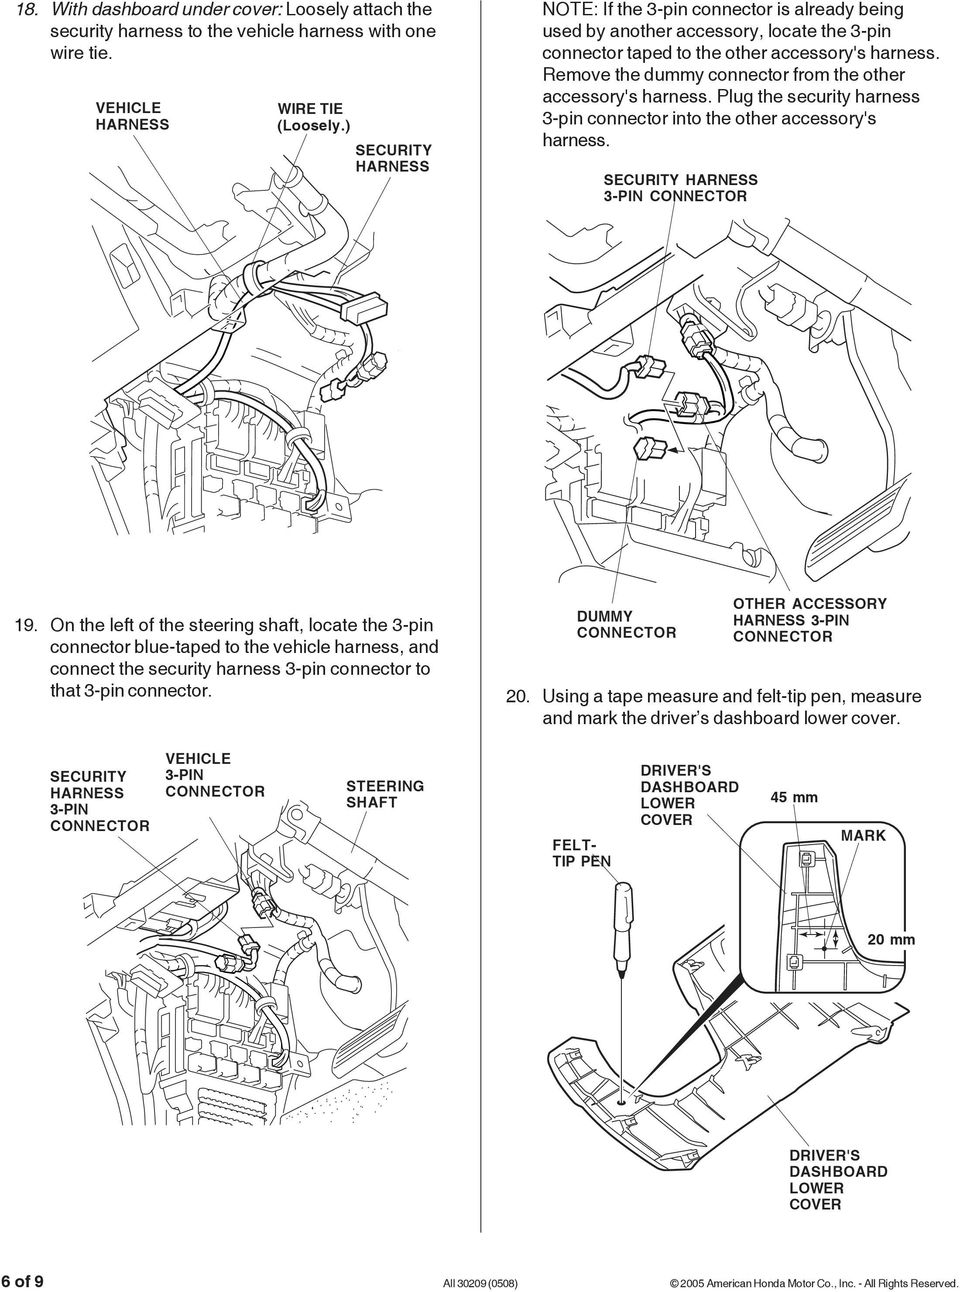 Remove the dummy connector from the other accessory's harness. Plug the security harness 3-pin connector into the other accessory's harness. 3-PIN 19.